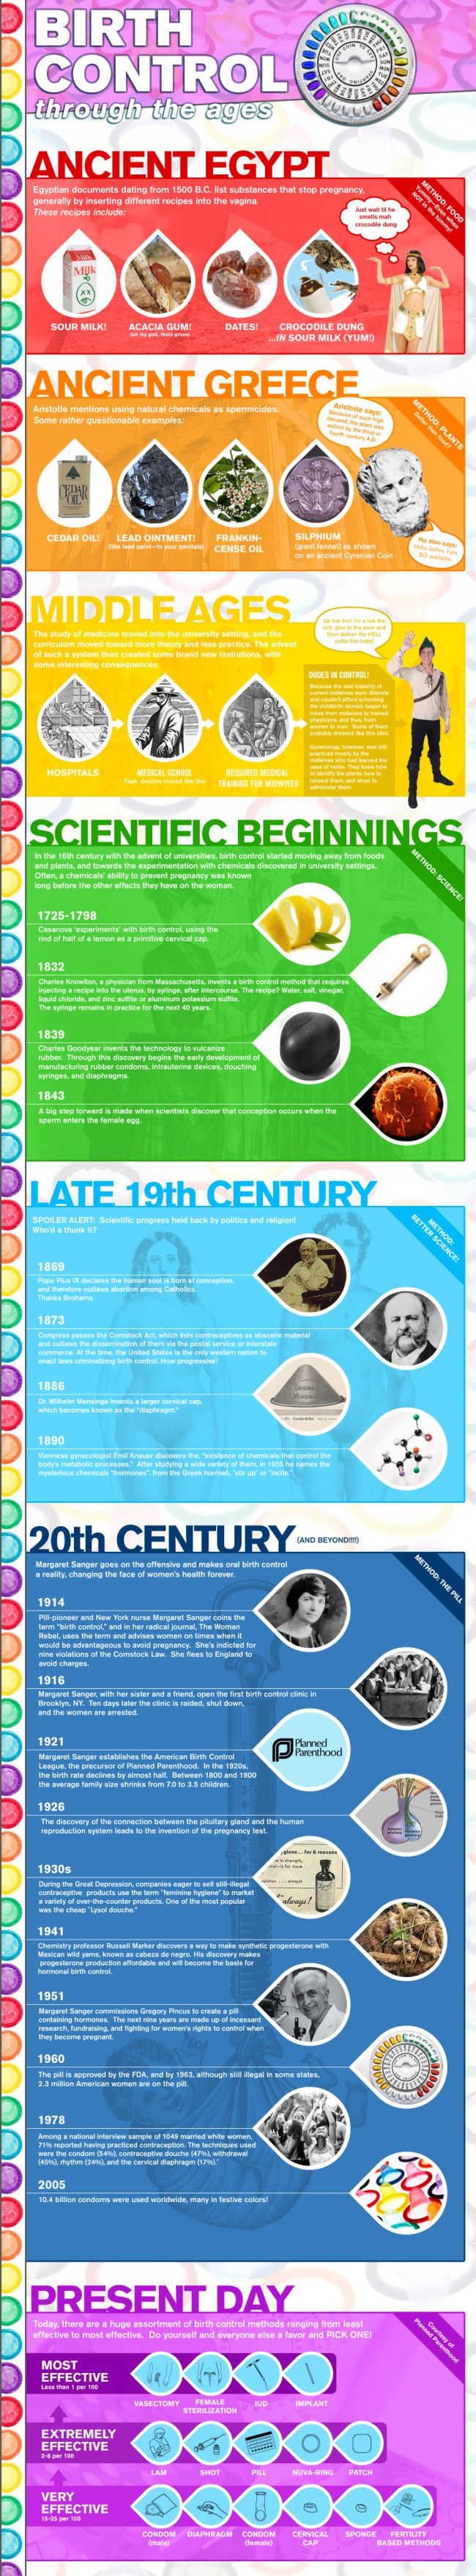 Birth control through the ages Infographic